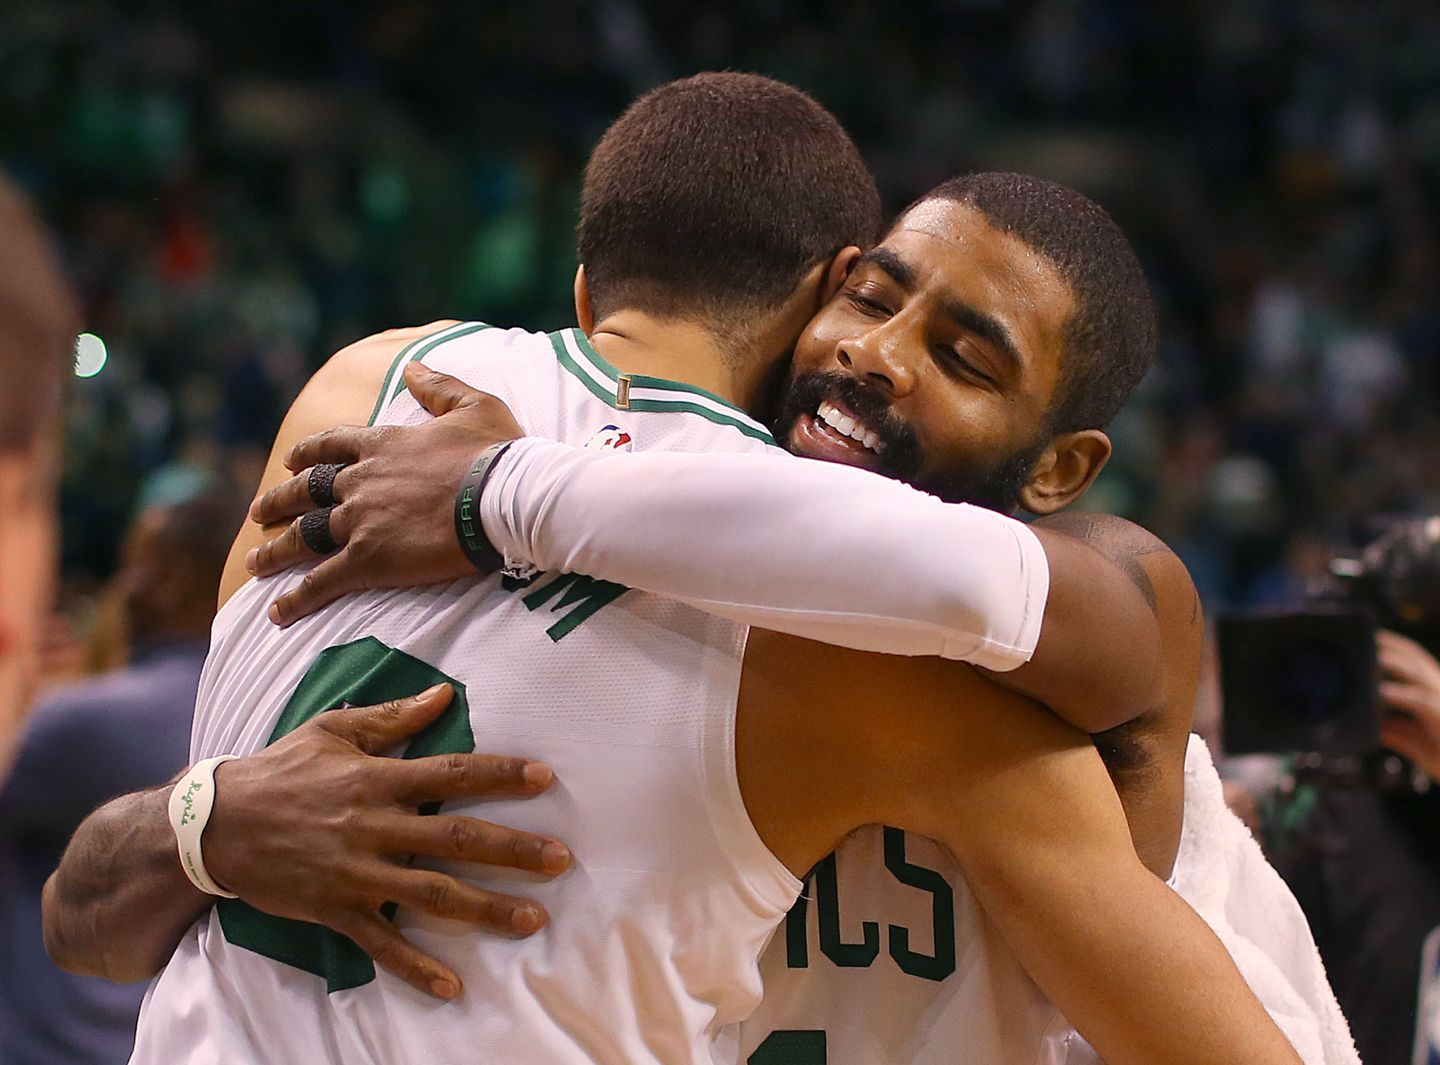 04e24a2d132a Kyrie Irving hugs Jayson Tatum at the end of a game in which the Celtics  staged